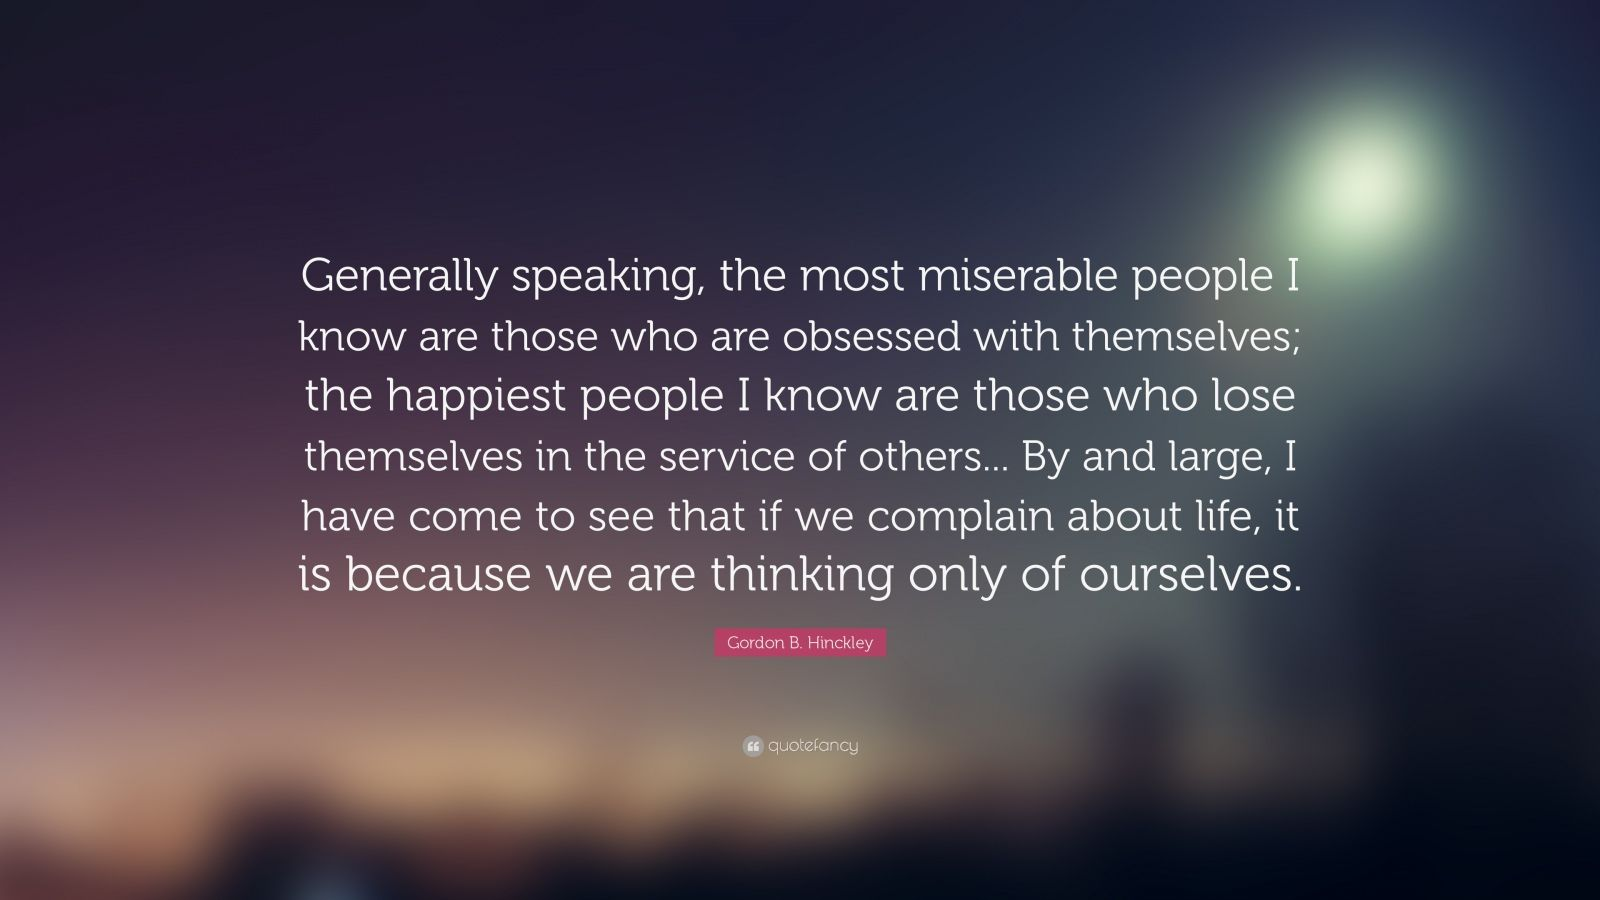 """Gordon B. Hinckley Quote: """"Generally speaking, the most miserable people I know are those who are obsessed with themselves; the happiest people I know are those who lose themselves in the service of others... By and large, I have come to see that if we complain about life, it is because we are thinking only of ourselves."""""""